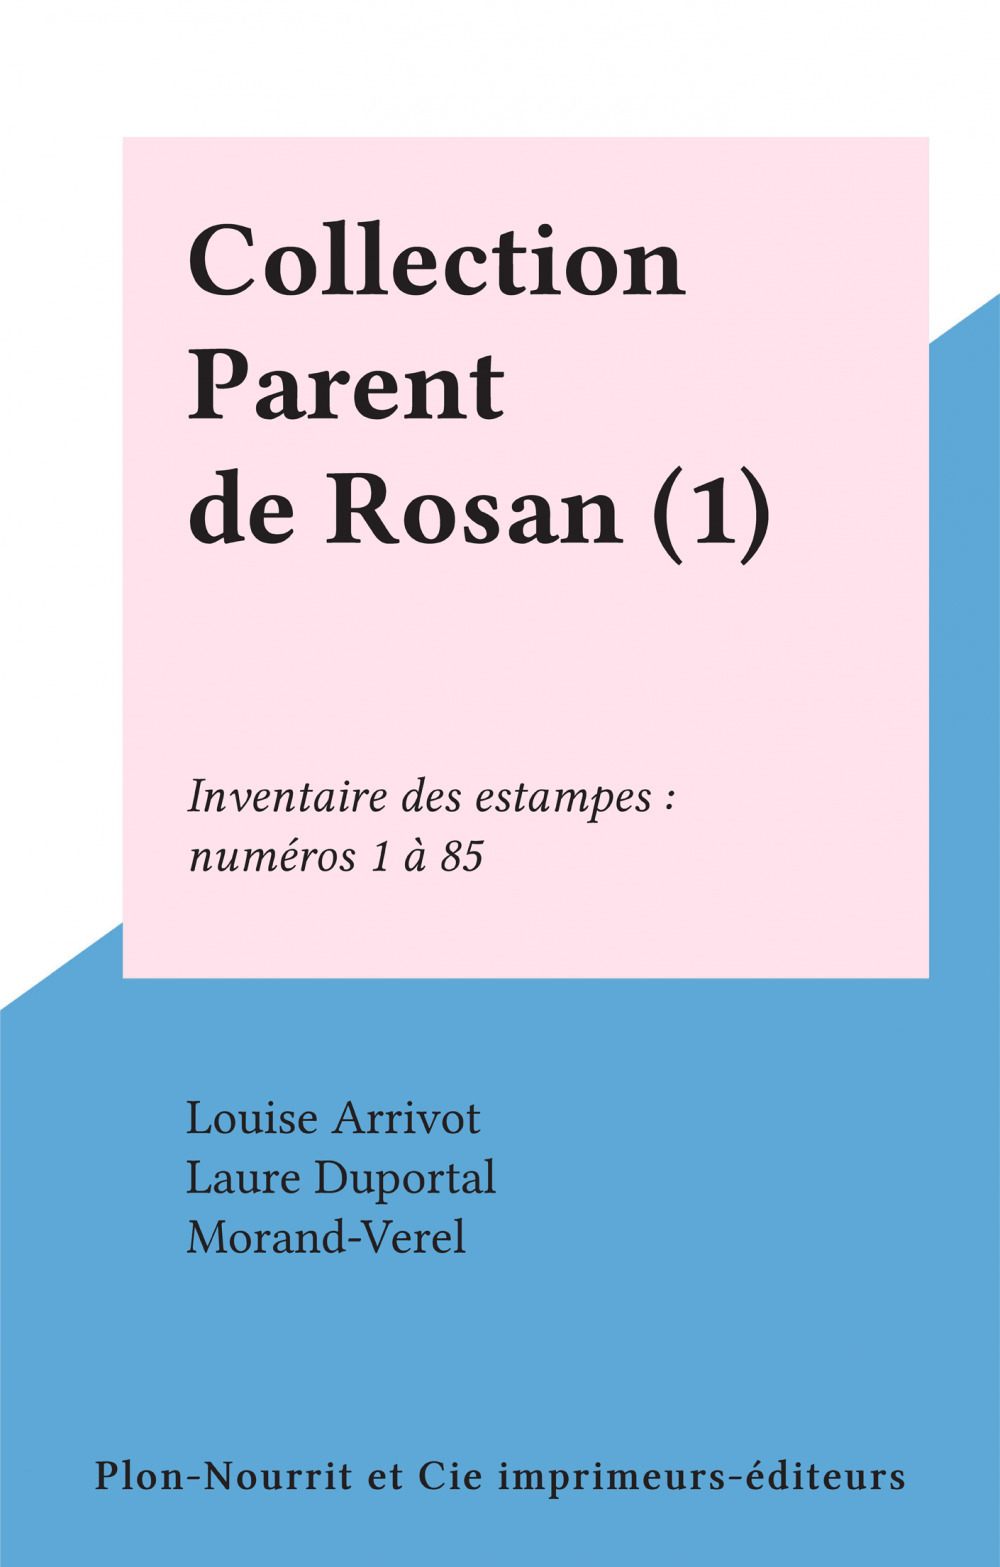 Collection Parent de Rosan (1)